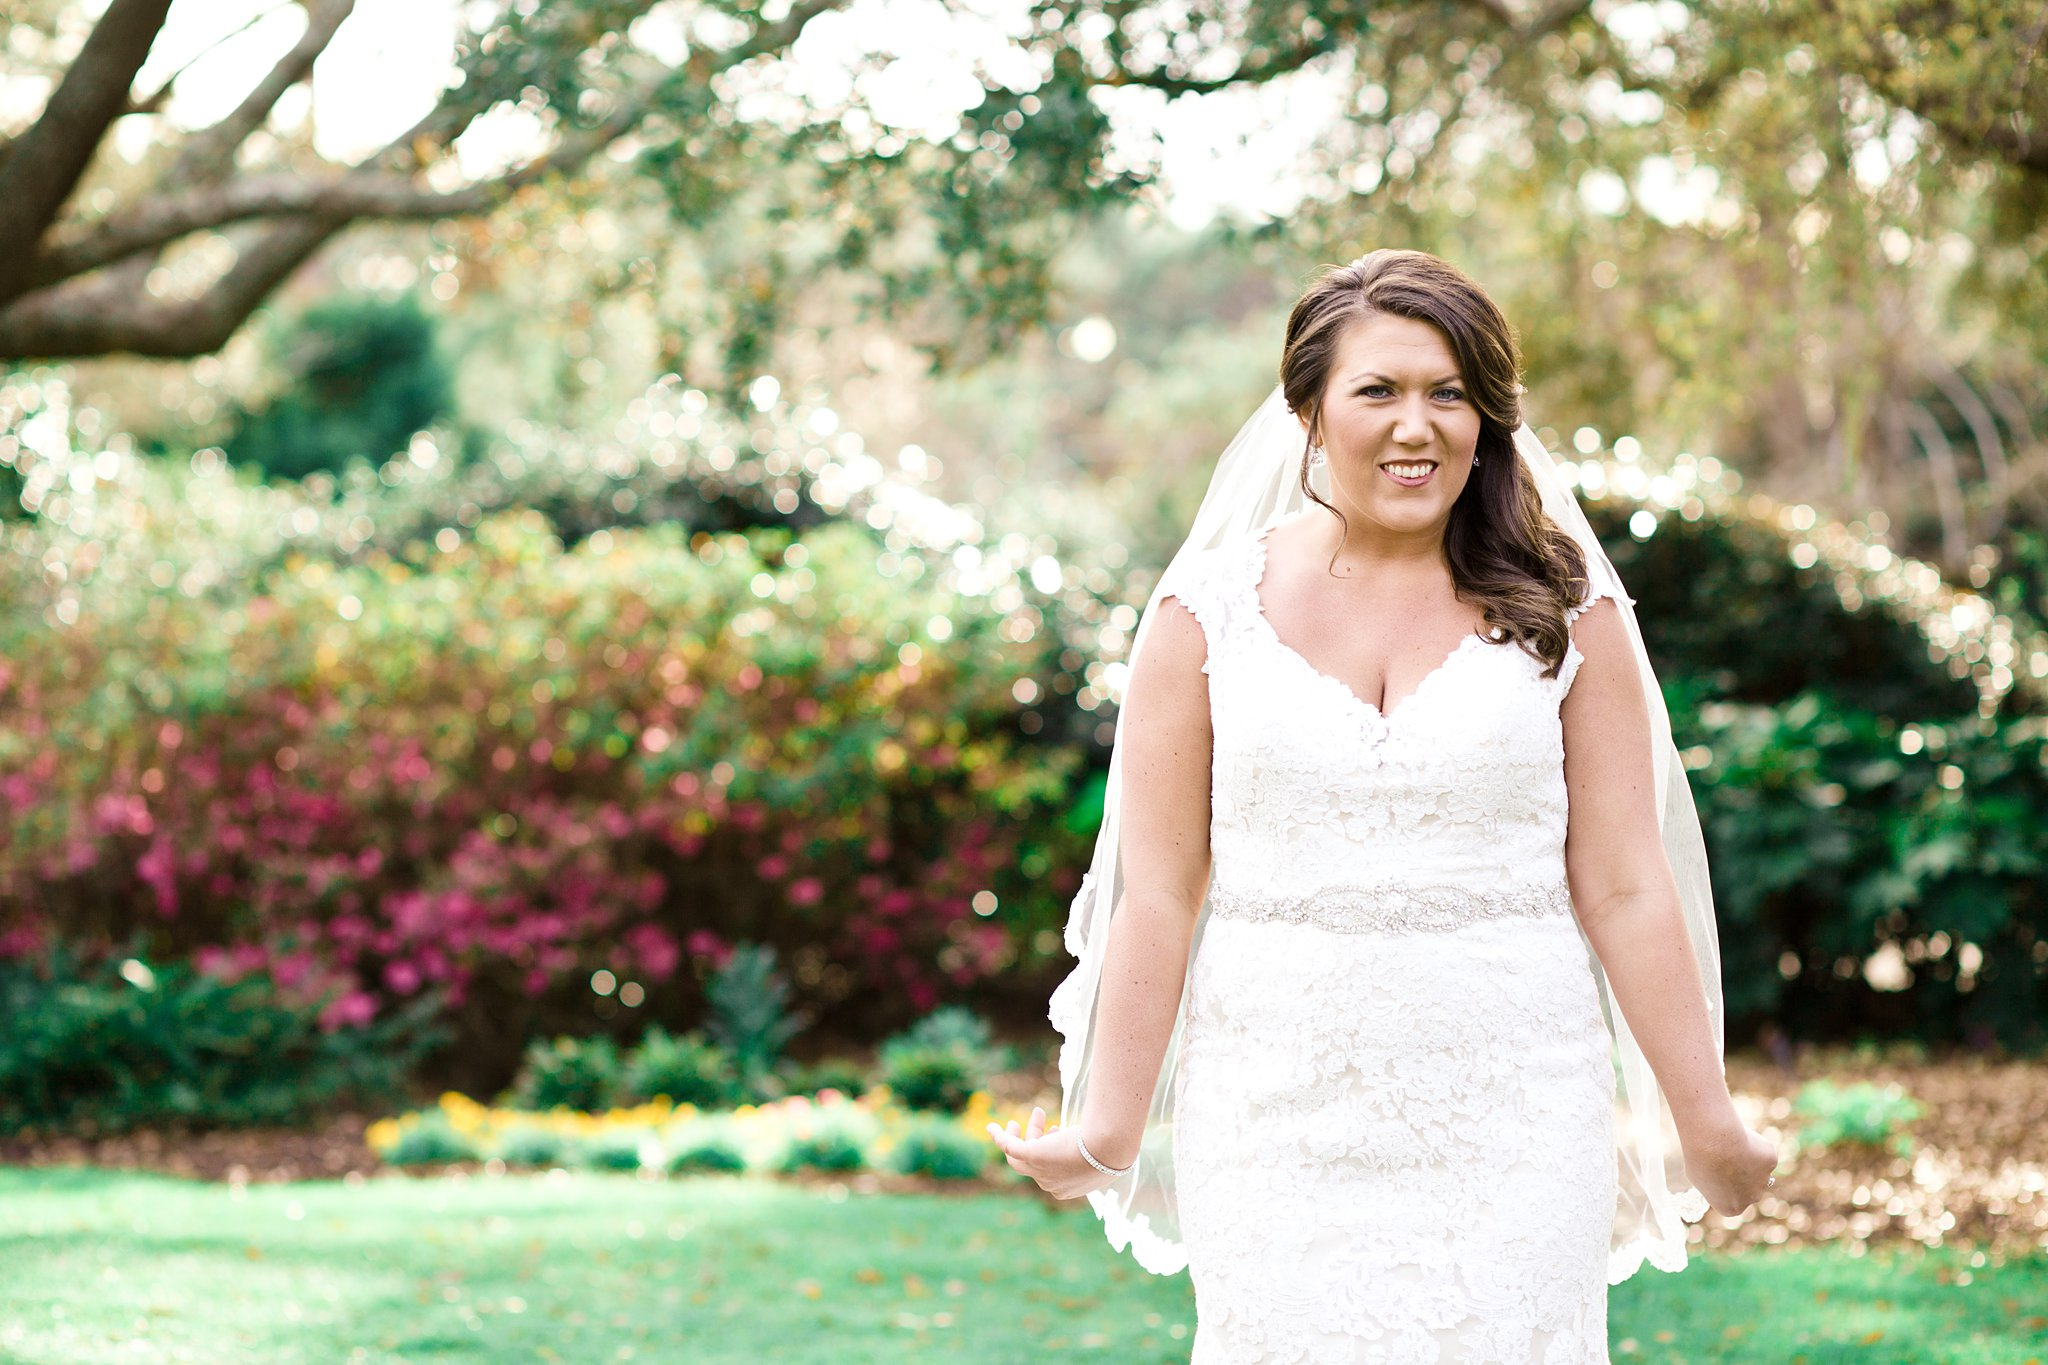 litchfield-golf-country-club-bridal-session-pawleys-island-sc-photos_0128.jpg